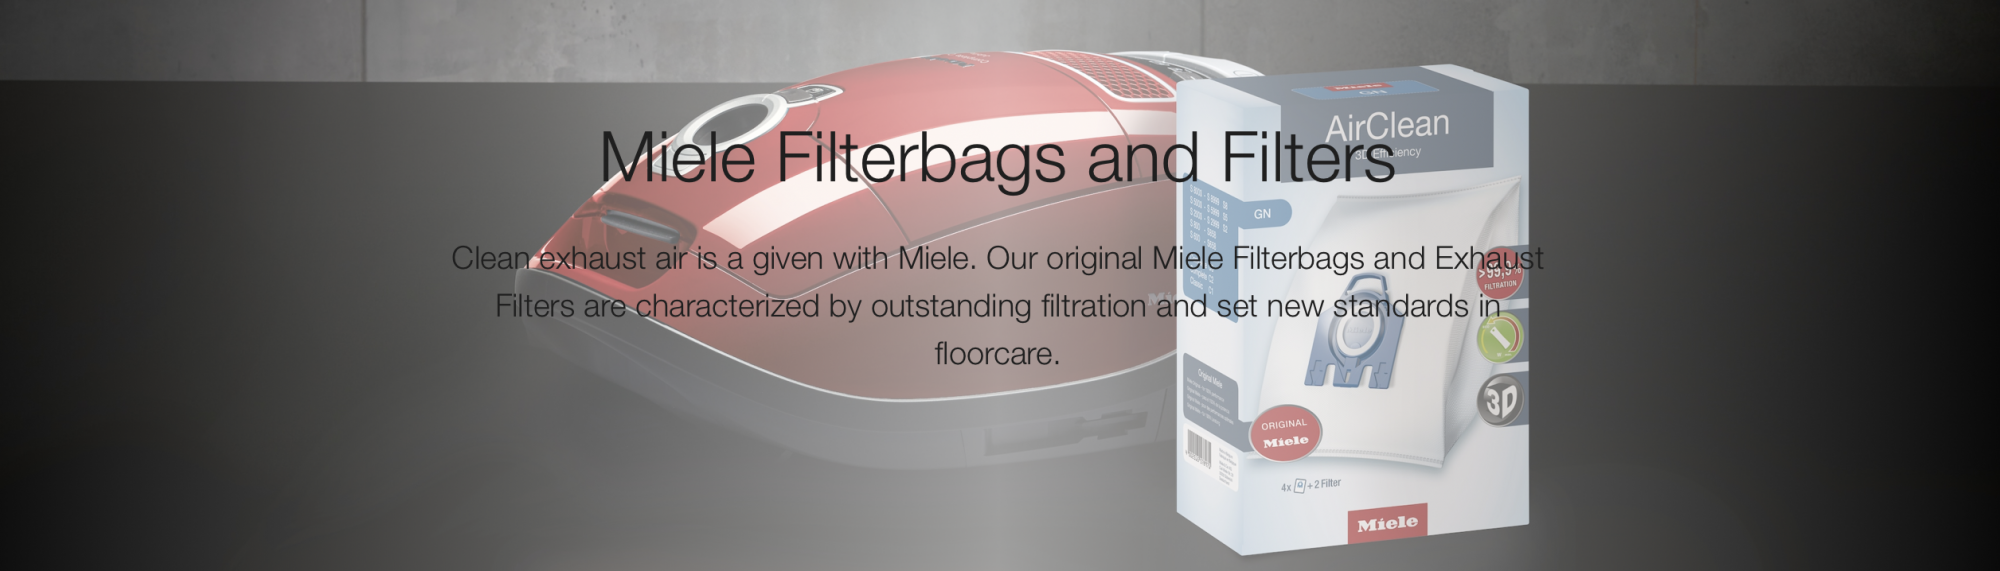 Miele Filterbags and Filters